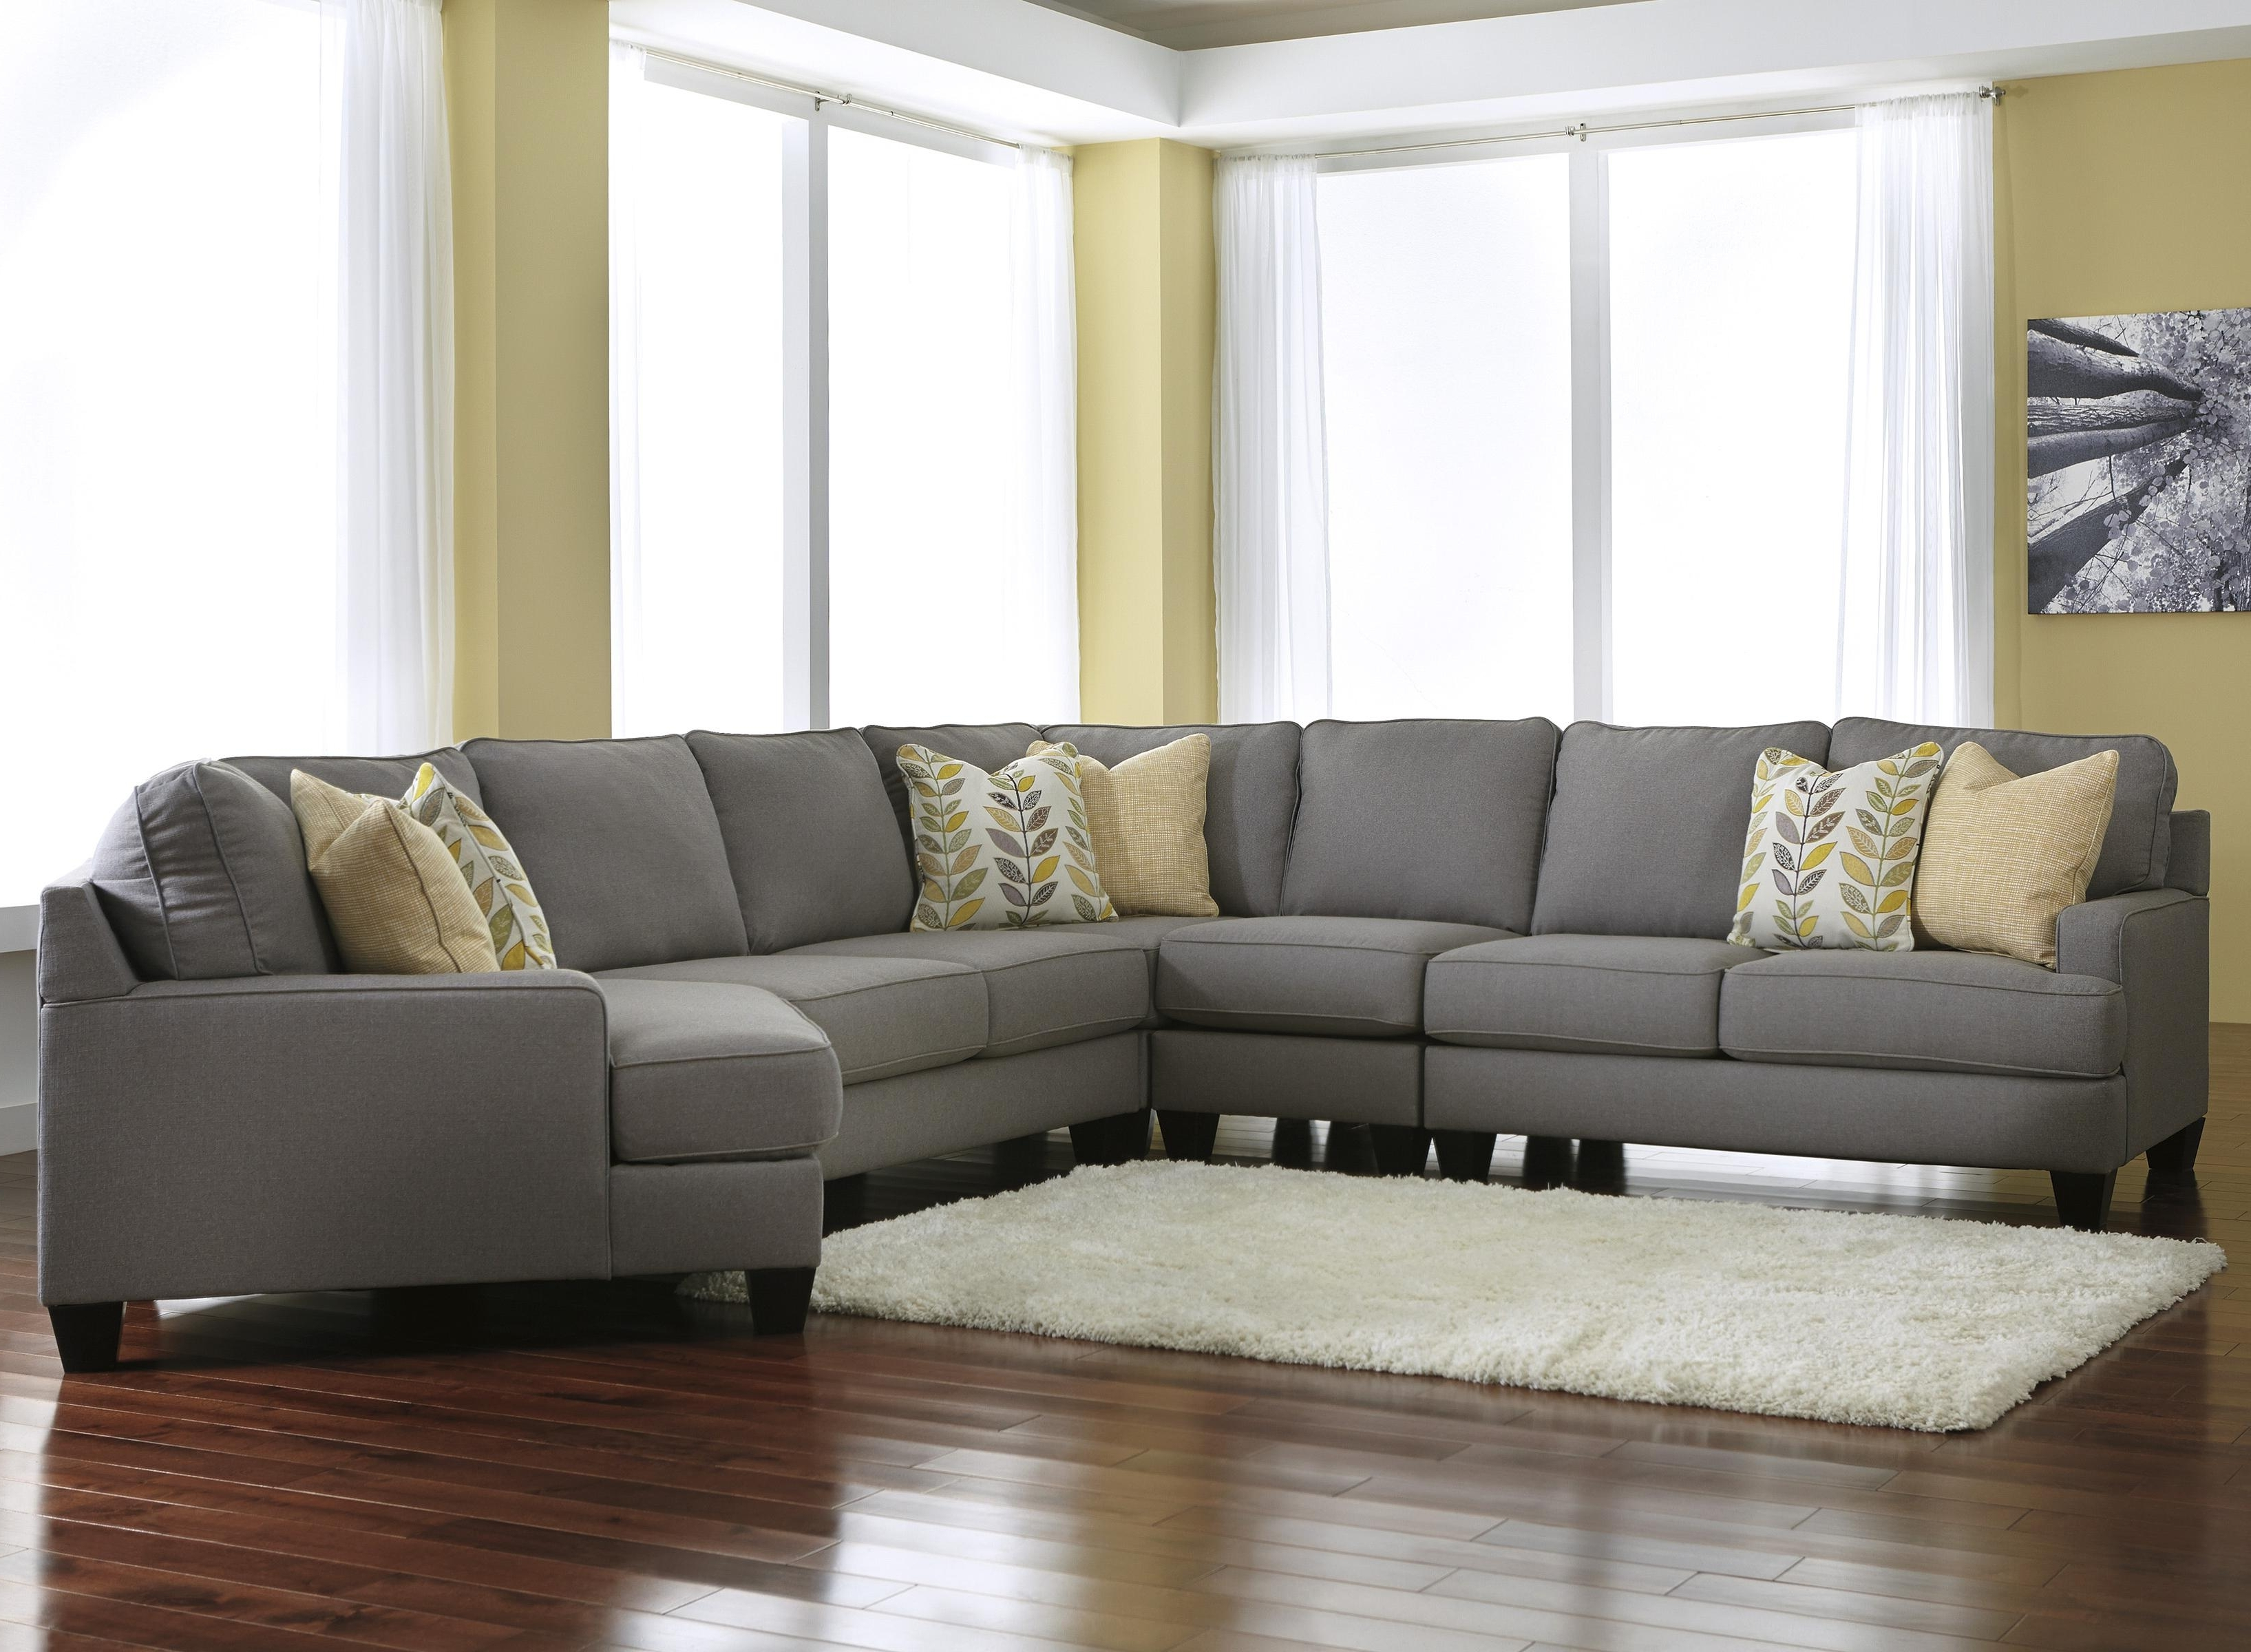 Favorite Eau Claire Wi Sectional Sofas Inside Chamberly – Alloy Modern 5 Piece Sectional Sofa With Right Cuddler (View 2 of 15)